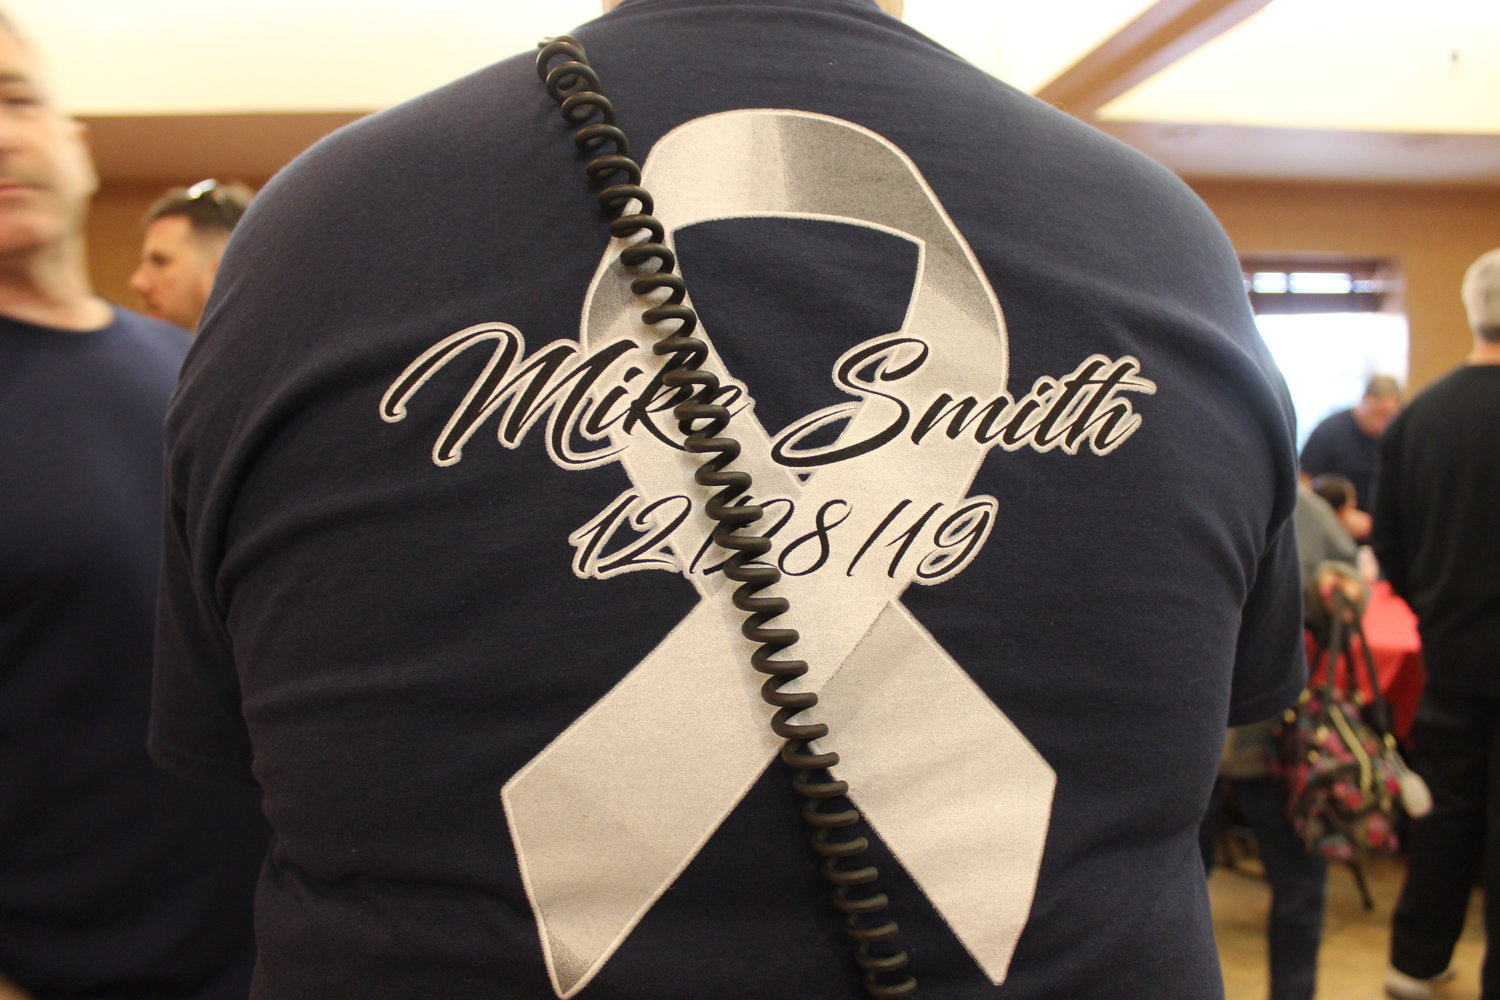 Engine Company #2 members made shirts to commemorate the loss of ex-captain Michael Smith.